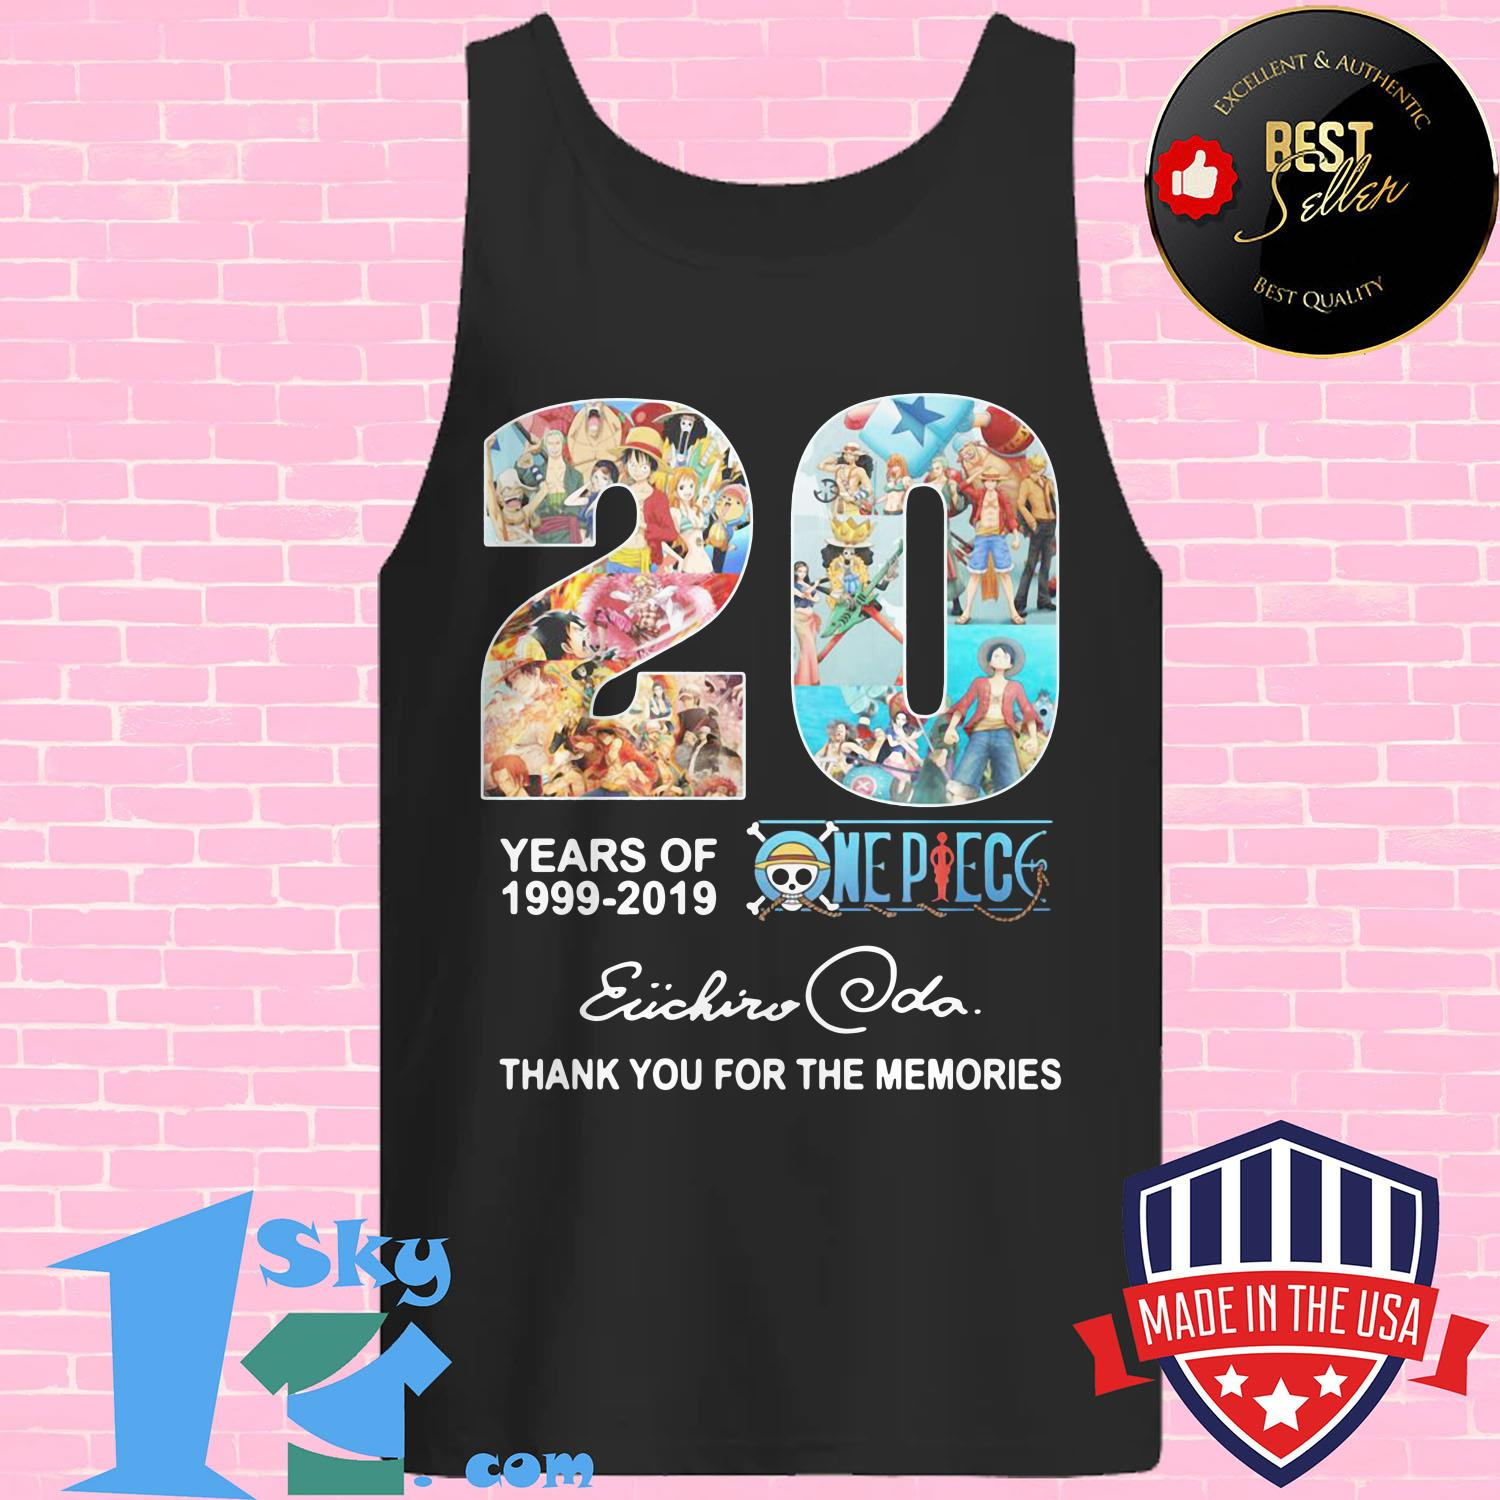 20 year of one piece anime anniversary 1999 2019 eiichiro oda tank top - 20 year of One Piece Anime anniversary 1999 2019 Eiichiro Oda shirt